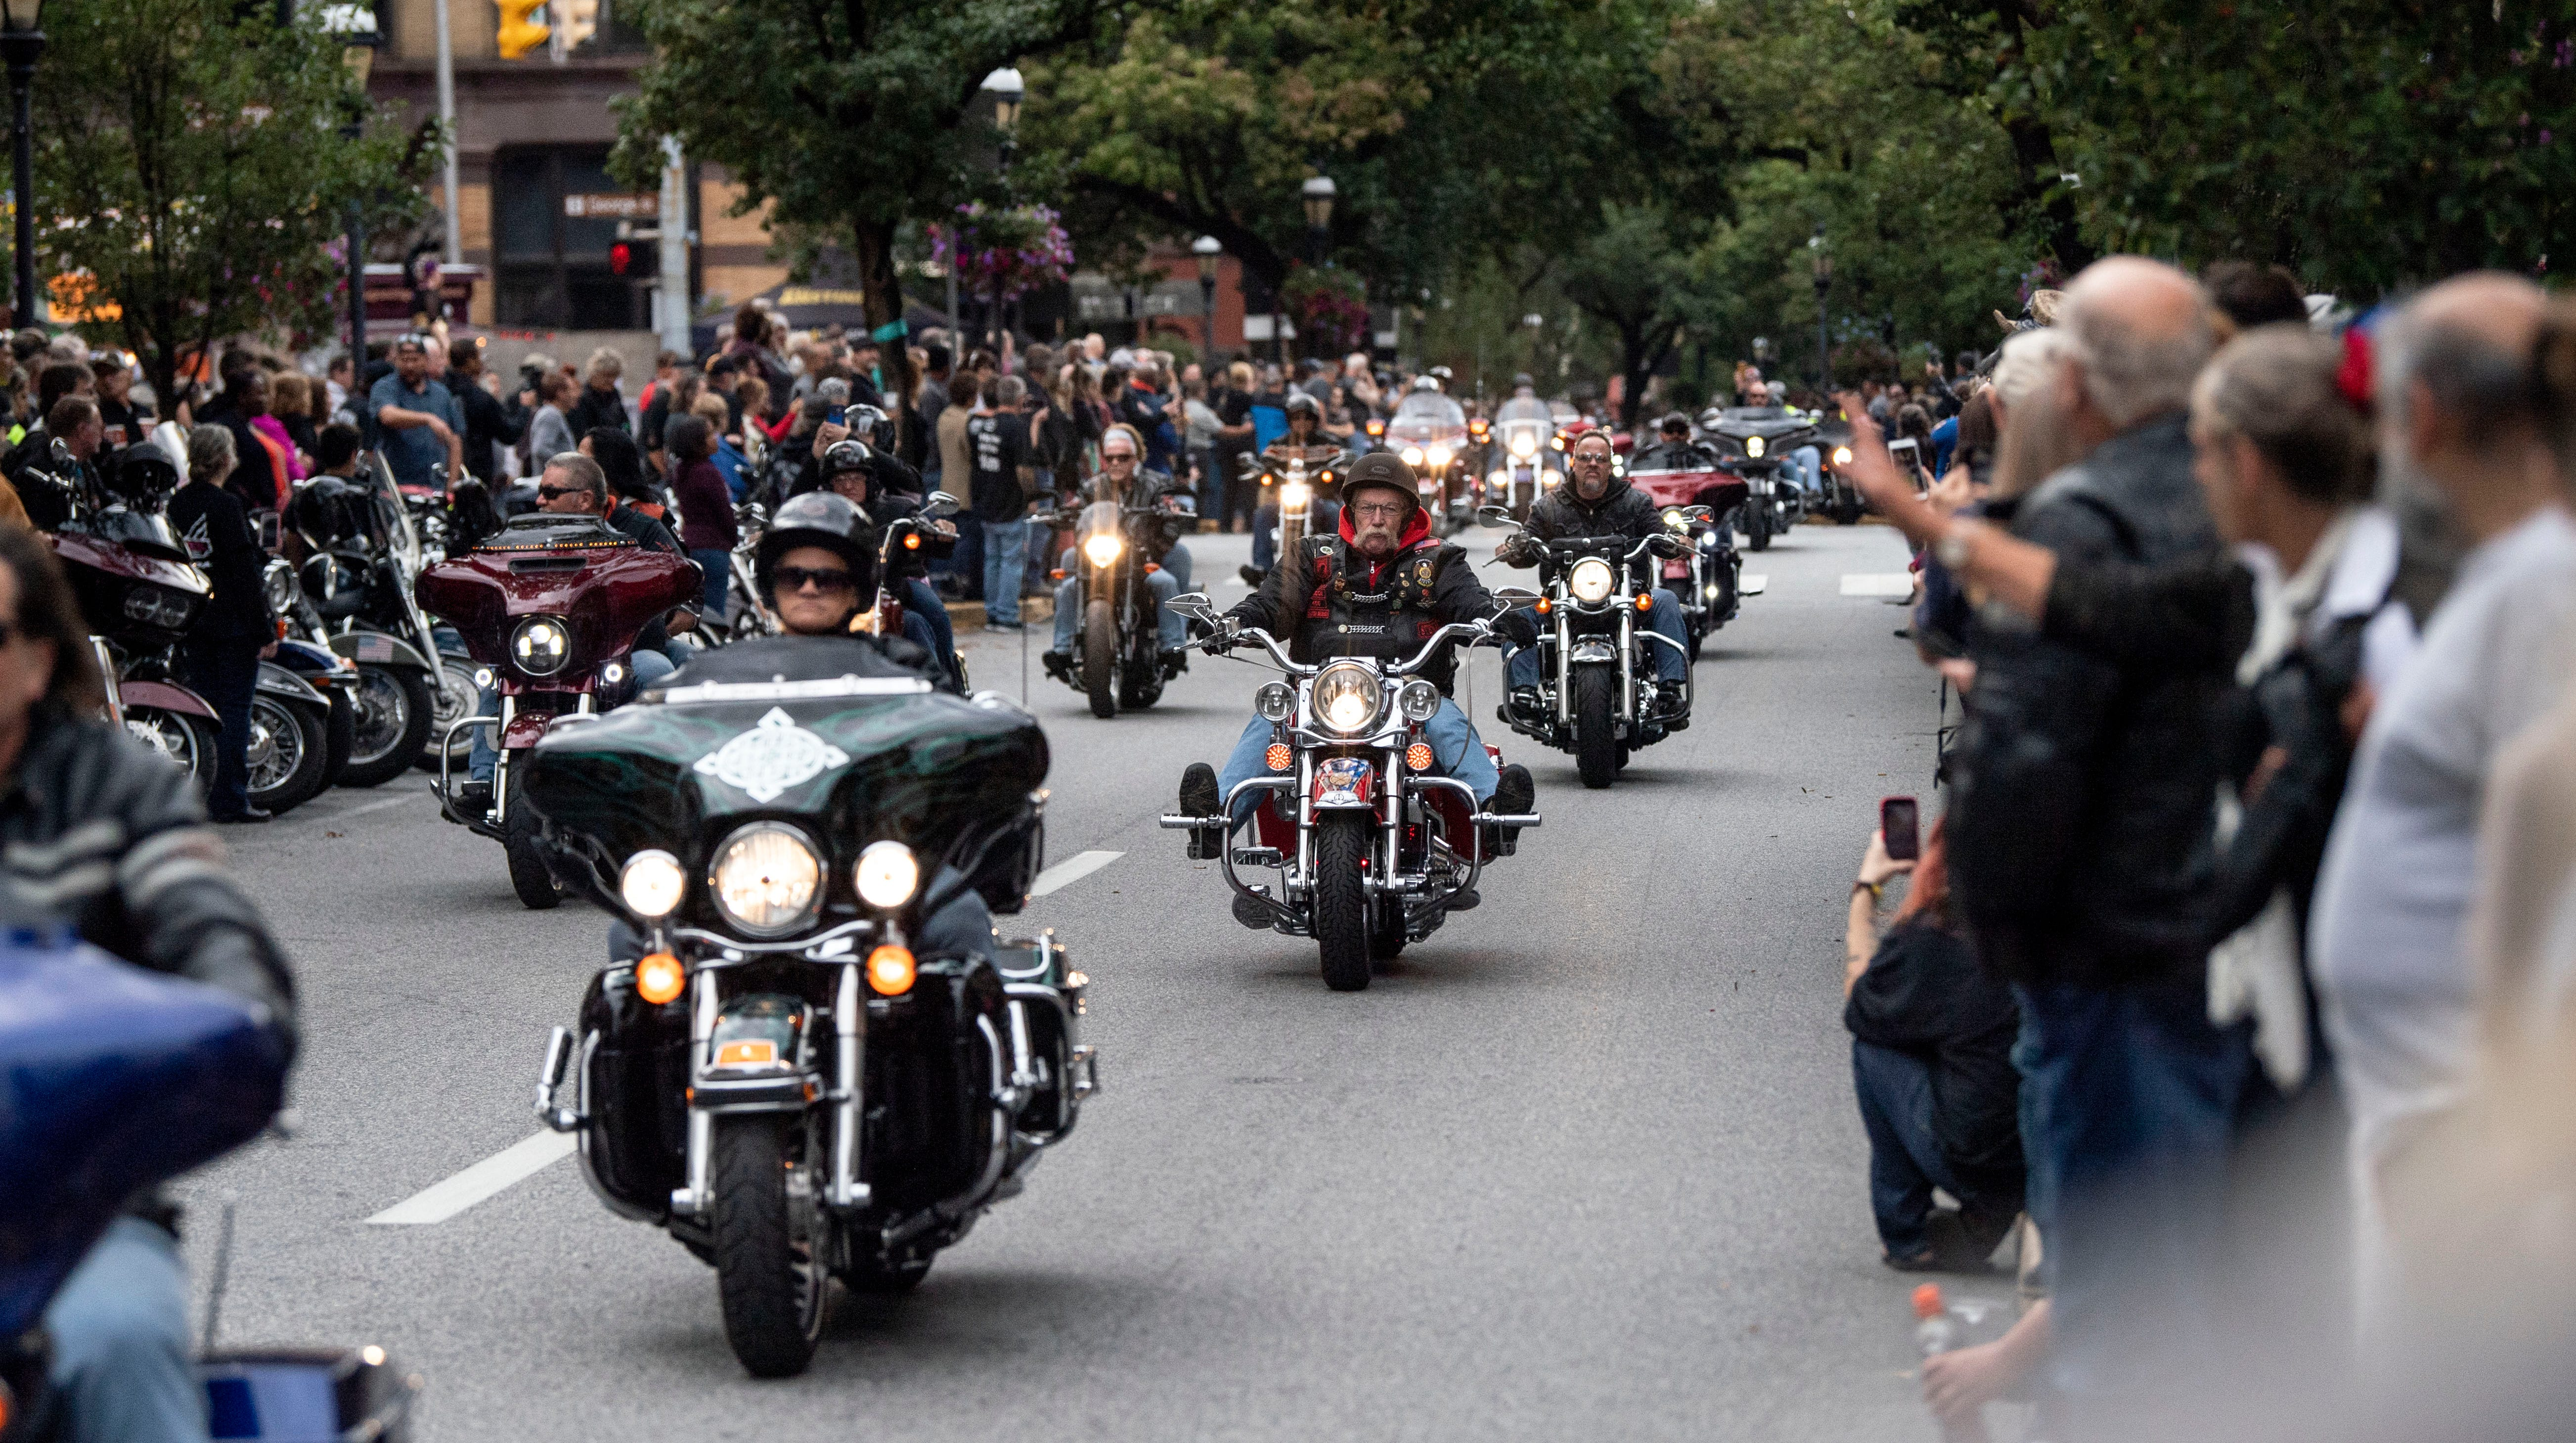 24th York Bike Night brings hundreds of motorcycle enthusiasts to city